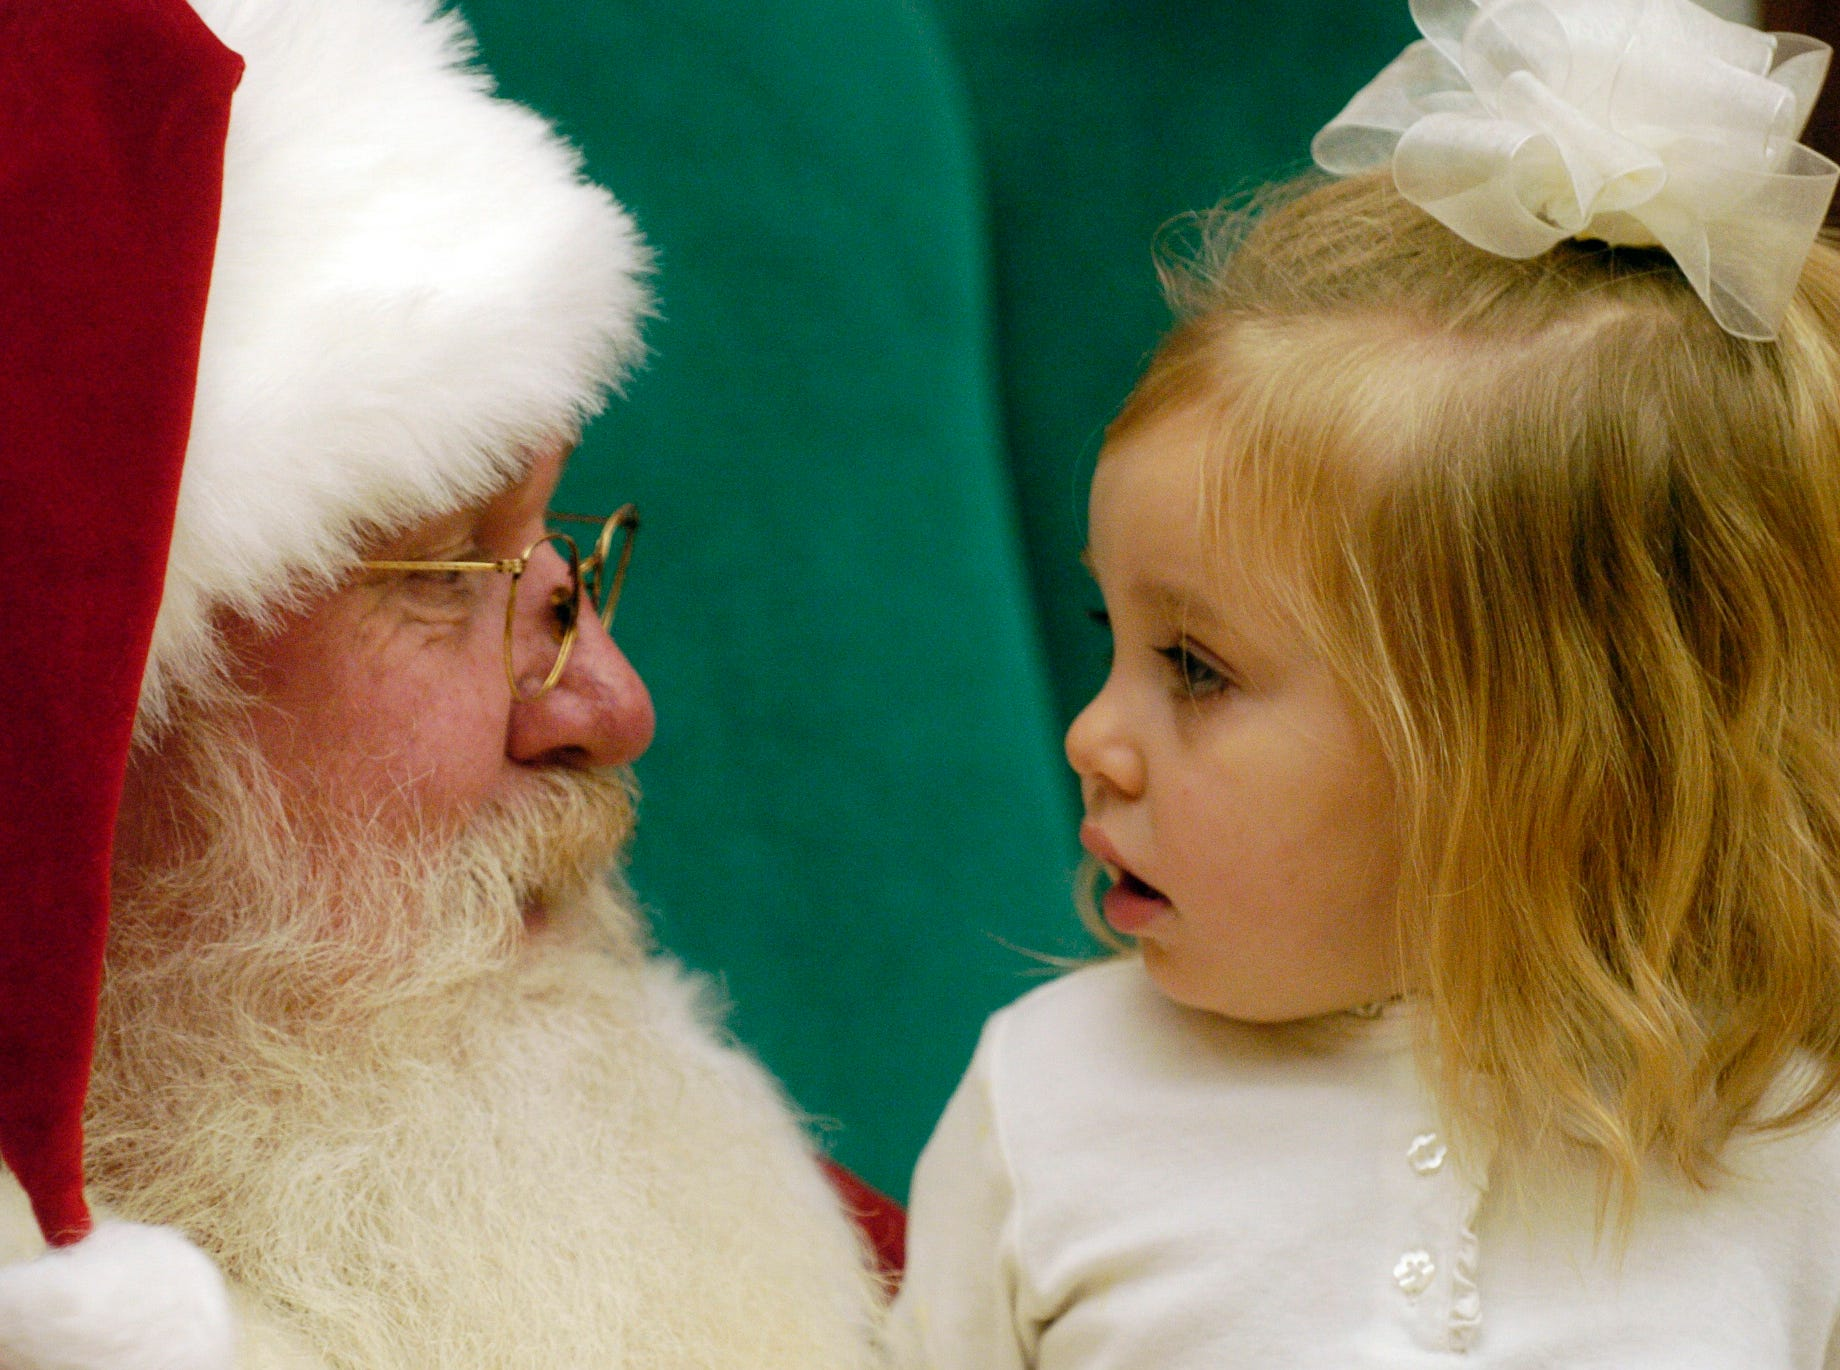 """Sunday,December 16,2007  Bryanna Ingram, 2, and Santa meet face-to-face during a visit to Santa Claus at Knoxville Center Mall. The Mall has has acquired the Haywood House, a life size replica of a turn-of-the-century home that will be the centerpiece for next year's """"Have Your Picture Taken with Santa"""" event."""